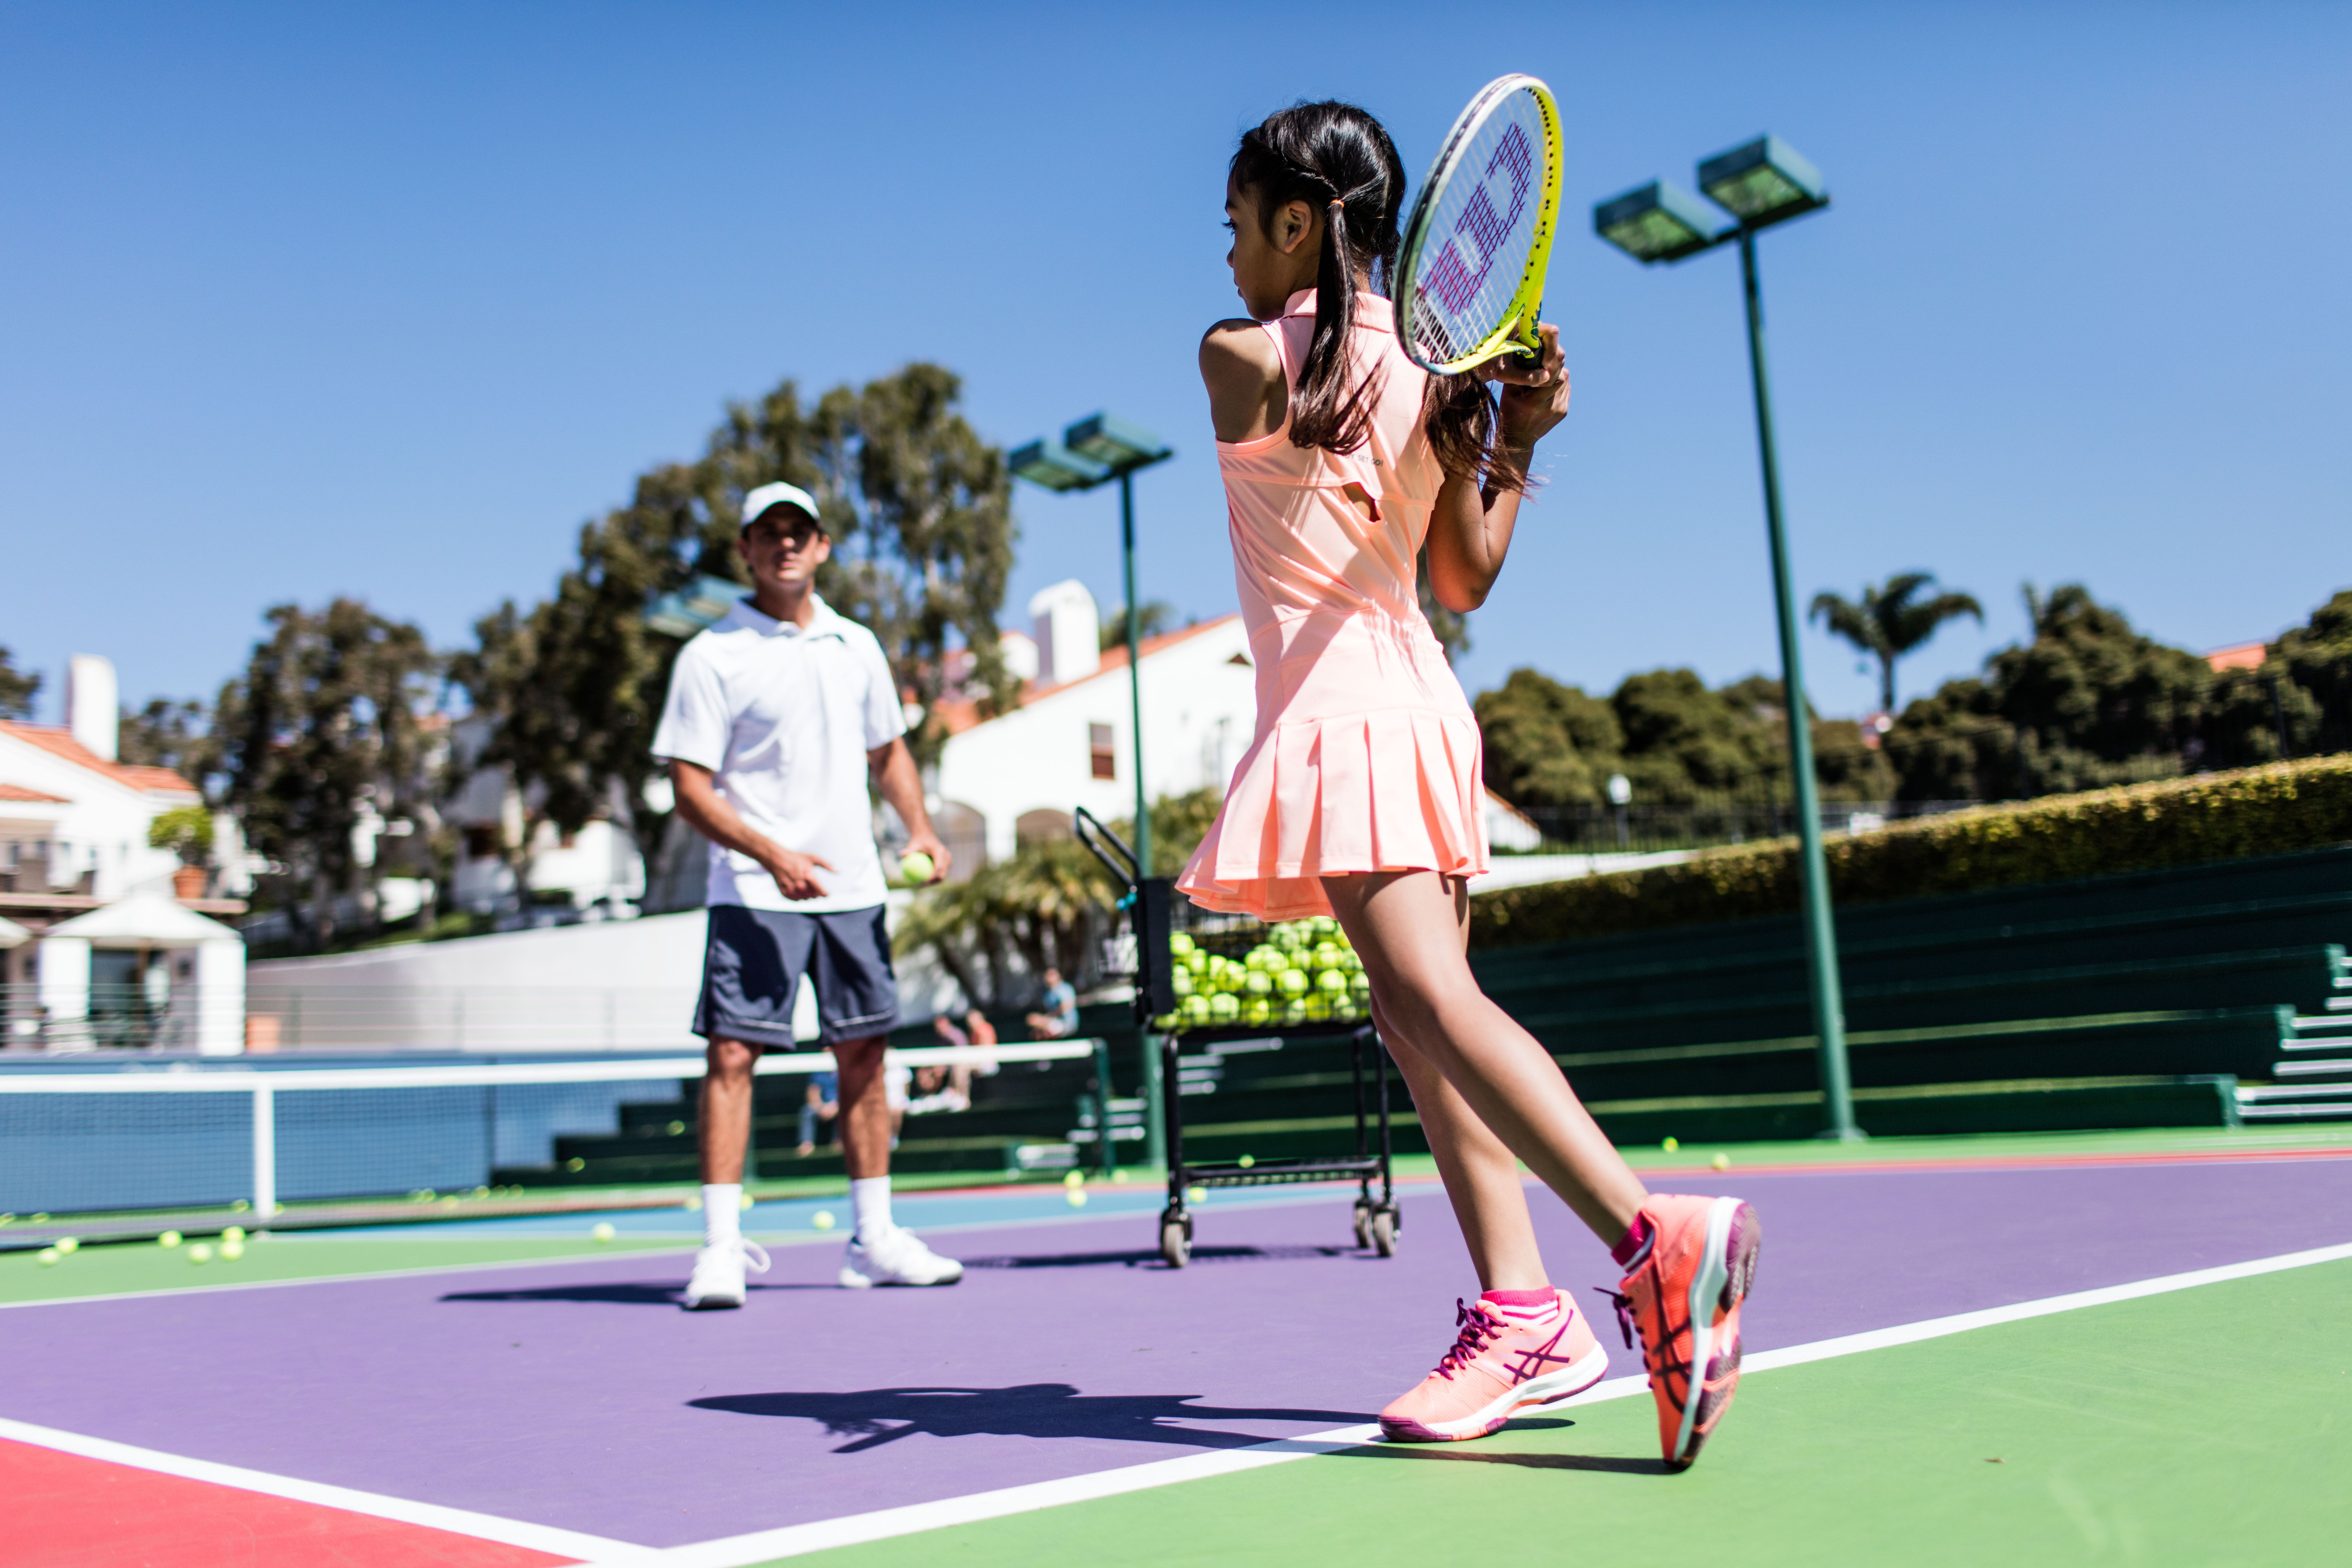 Come enjoy tennis junior camps at Omni La Costa. The